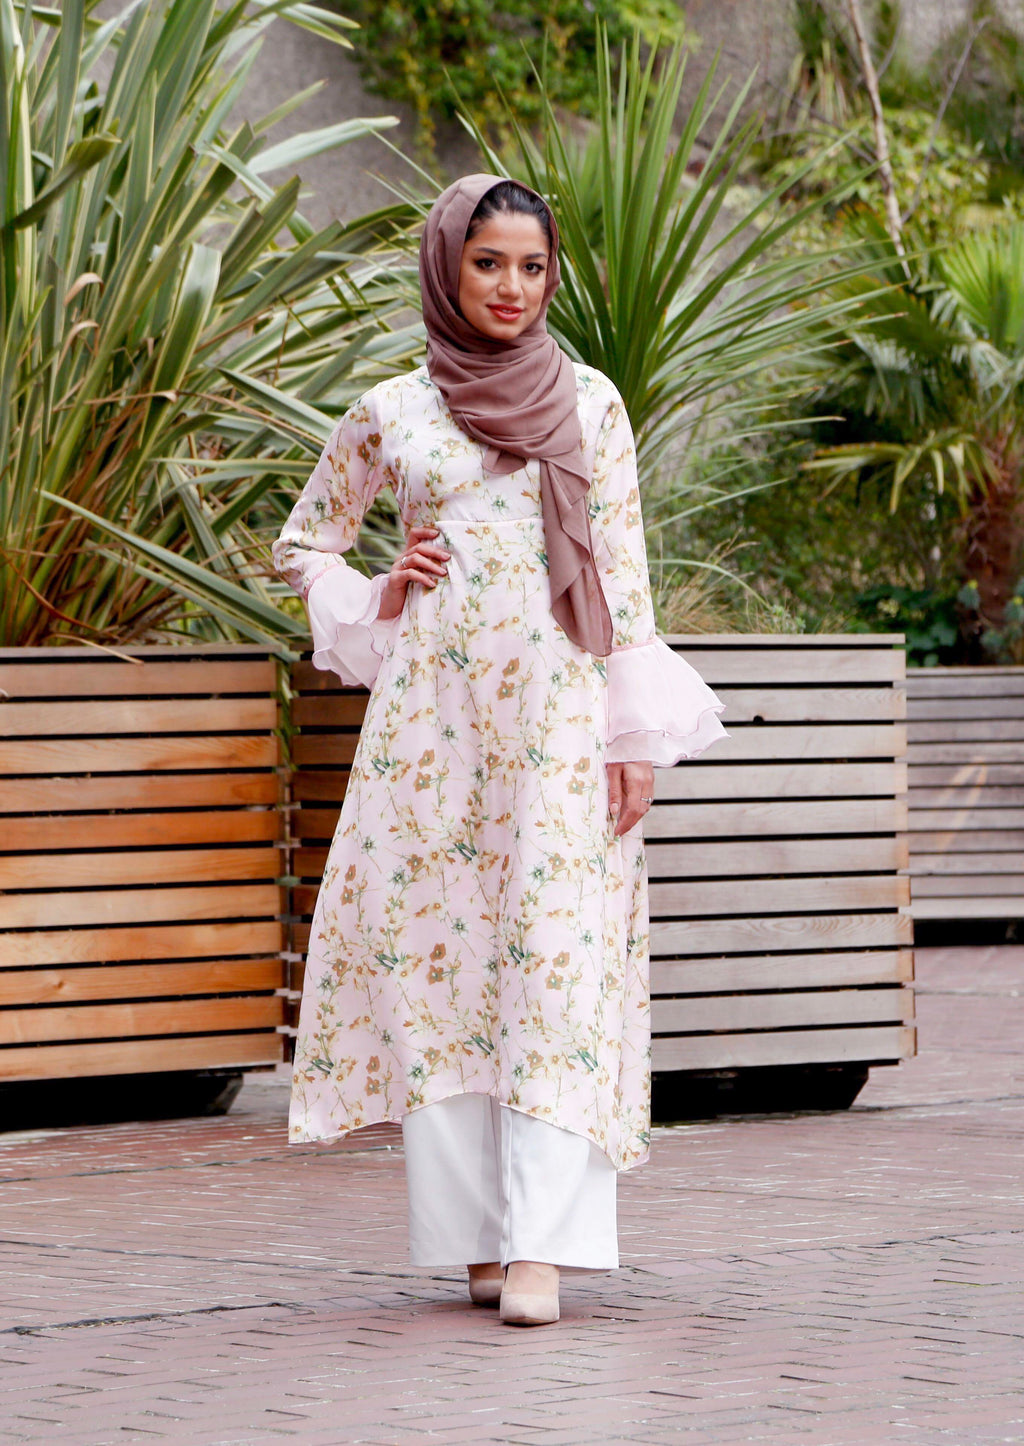 'Spring Blossom' Midi Dress